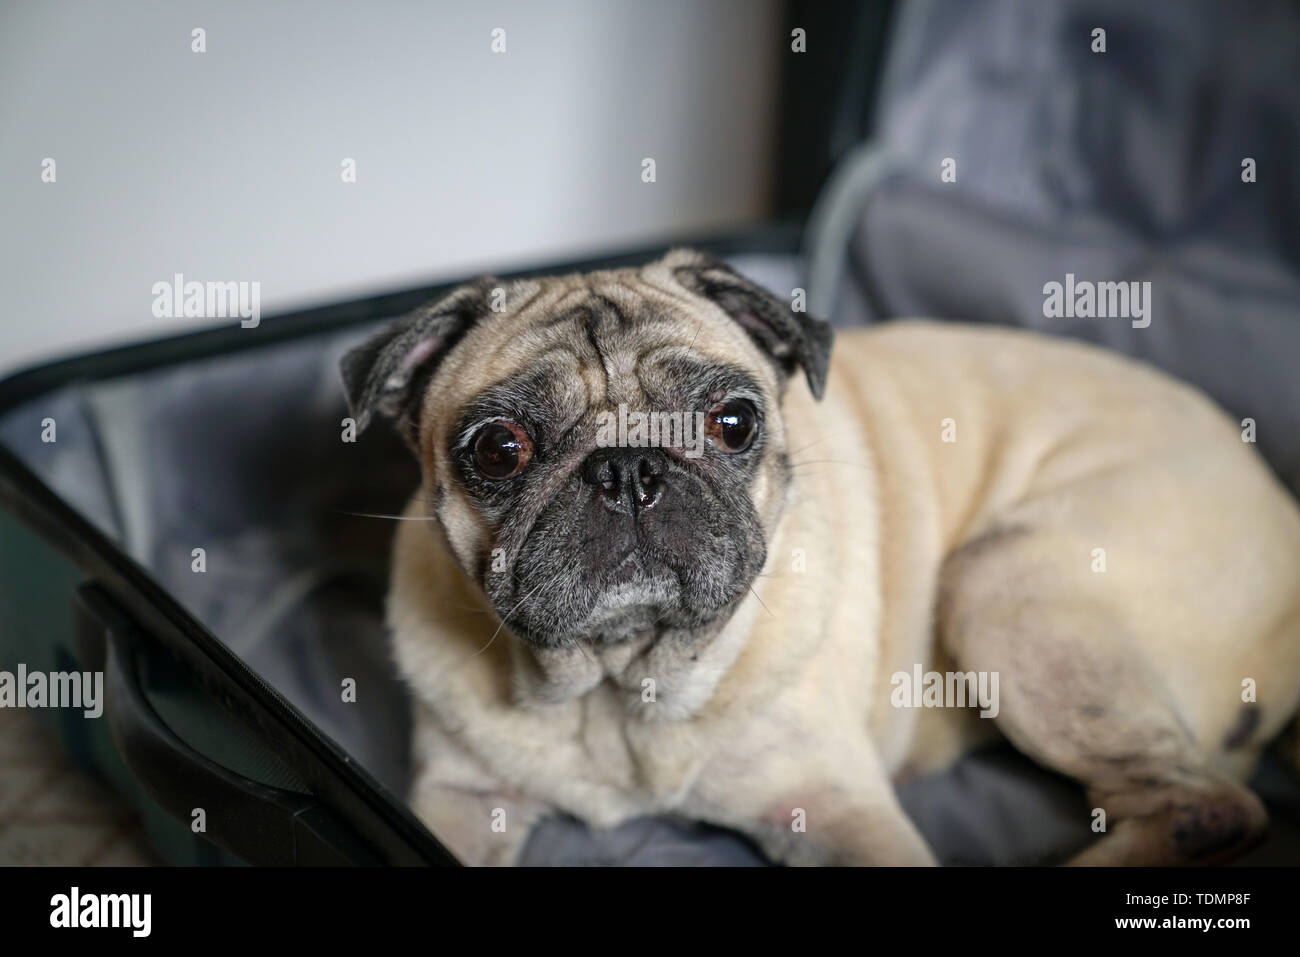 Pug dog in as suitcase  Travel or dog adoption concept Stock